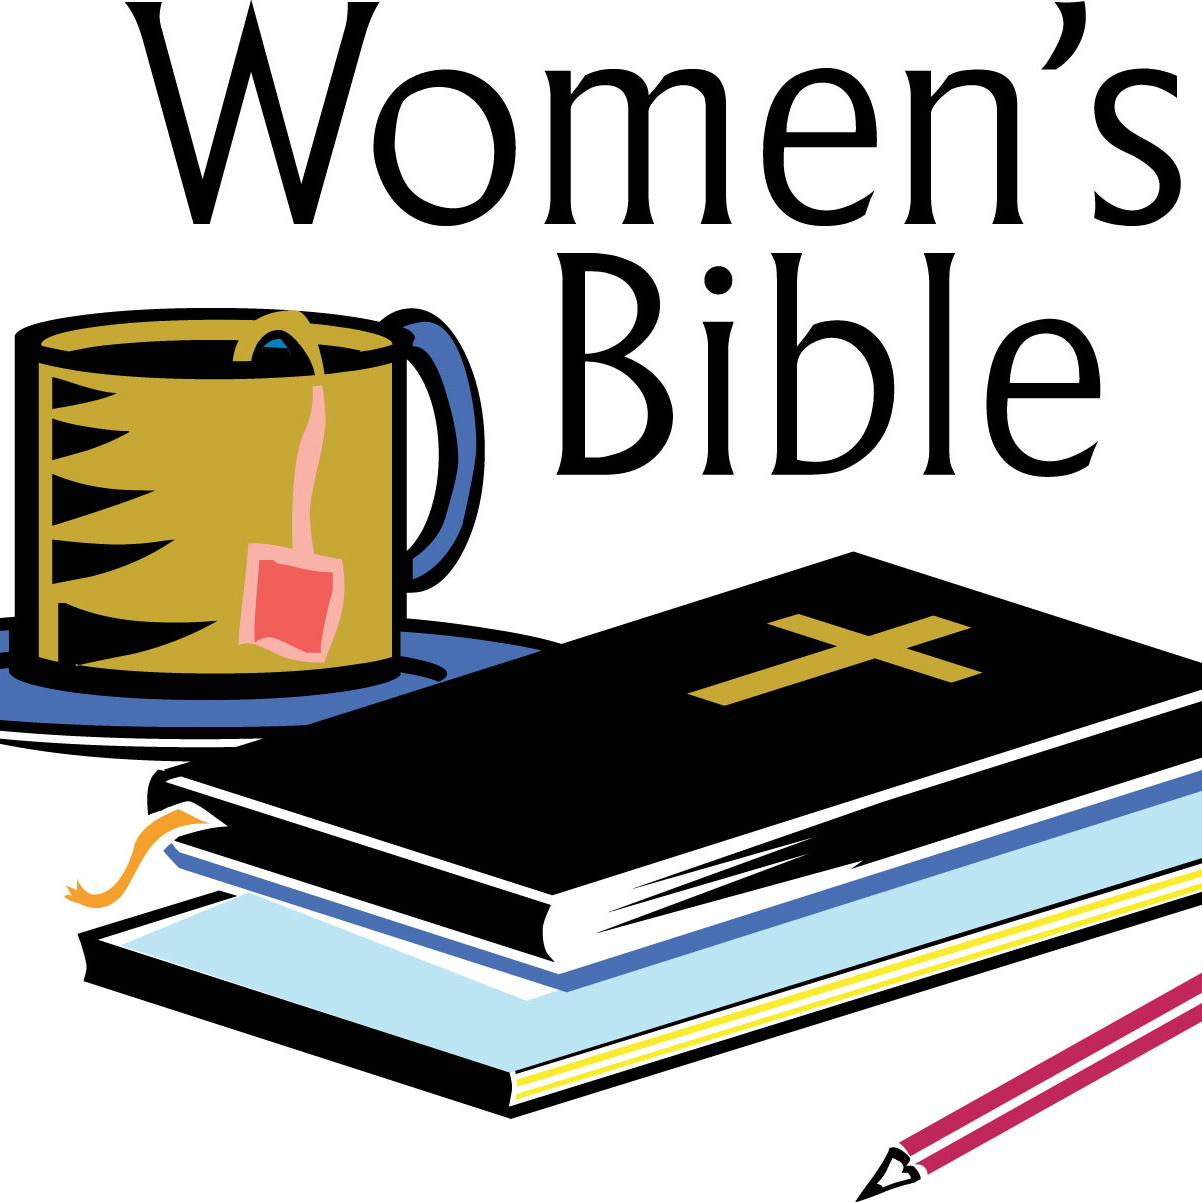 Womens Bible Study Clipart #1-Womens Bible Study Clipart #1-19